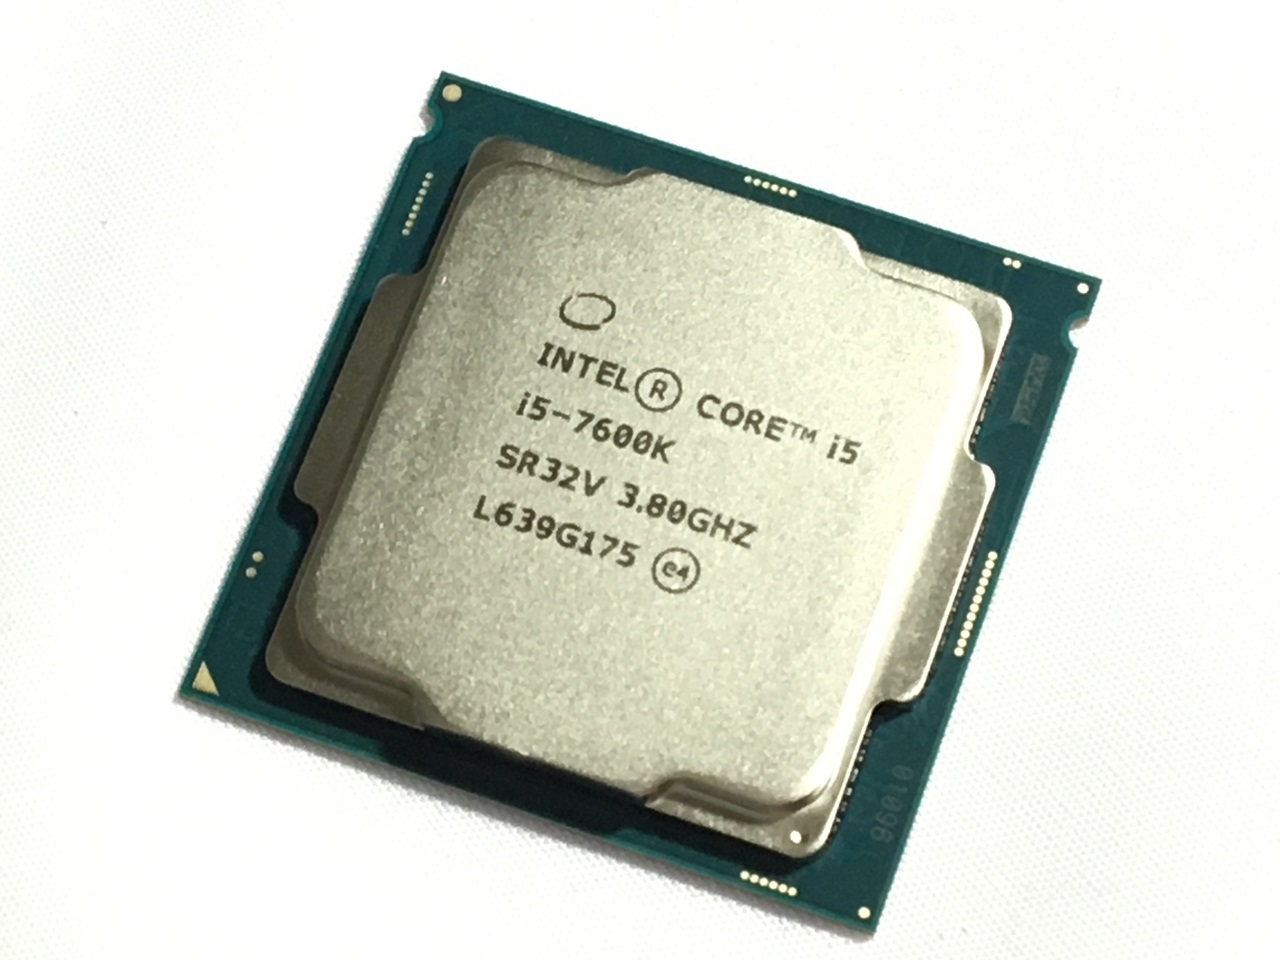 Hitting 4 9ghz On An Intel Core I5 7600k Kaby Lake With